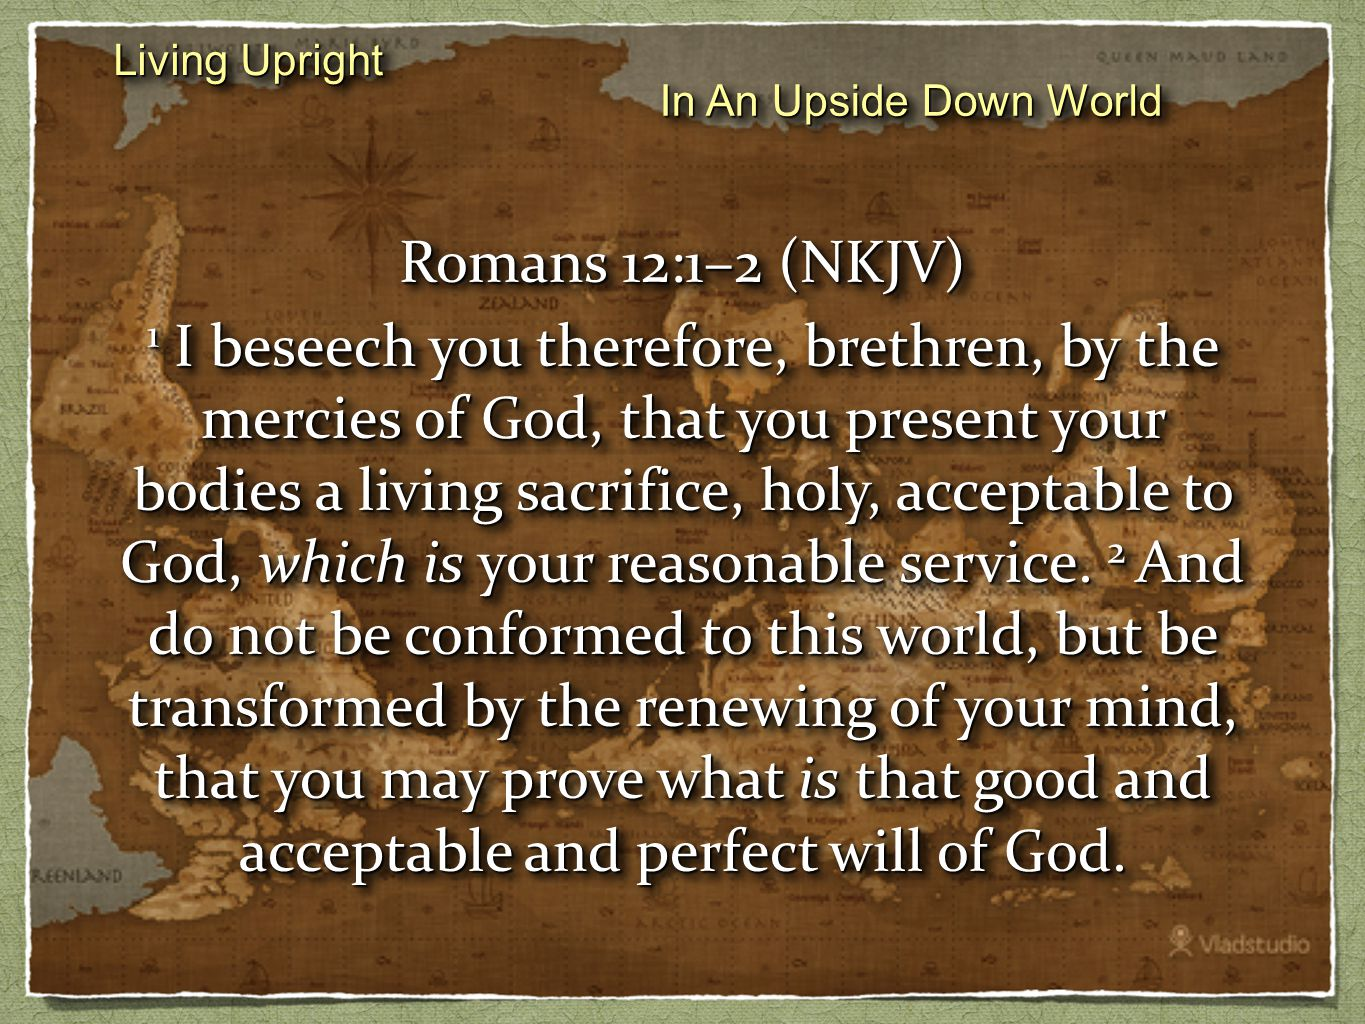 Living Upright In An Upside Down World Romans 12:1–2 (NKJV) 1 I beseech you therefore, brethren, by the mercies of God, that you present your bodies a living sacrifice, holy, acceptable to God, which is your reasonable service.